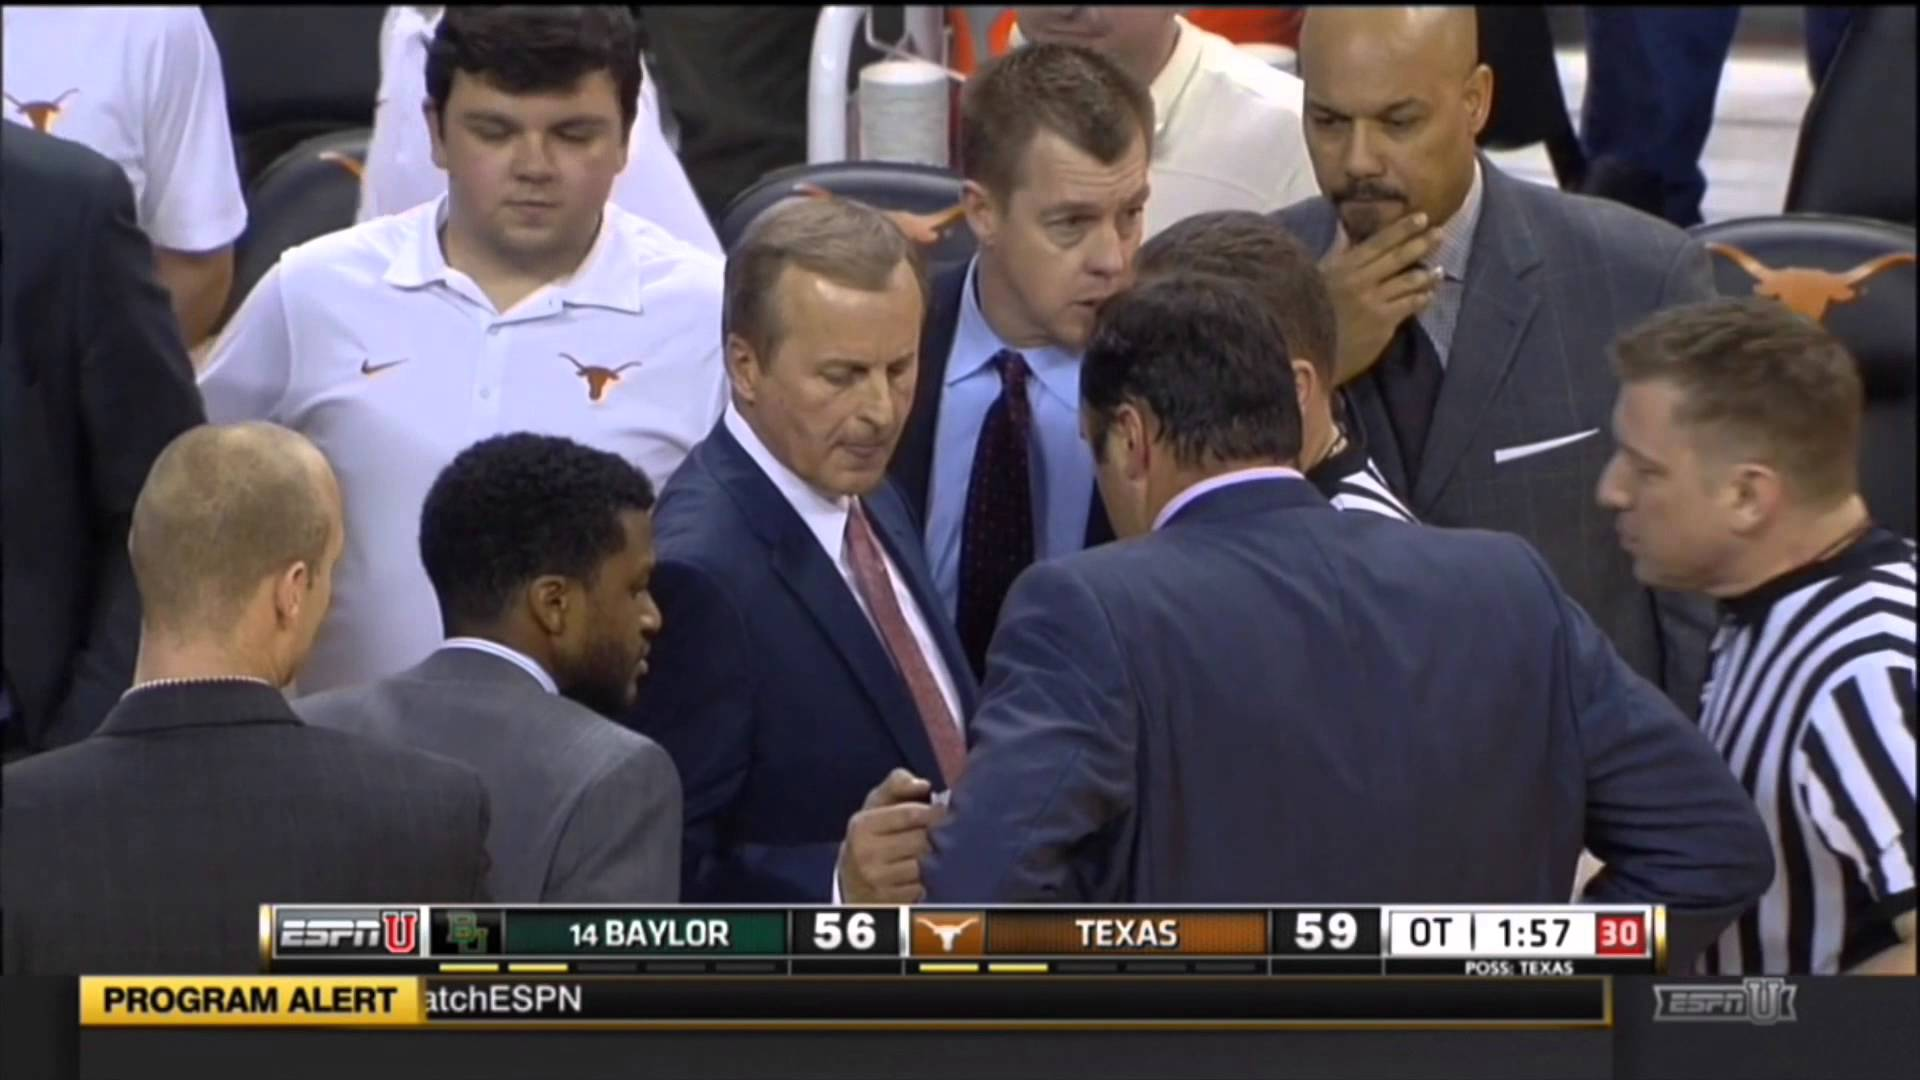 Scrum breaks out in Texas vs. Baylor game